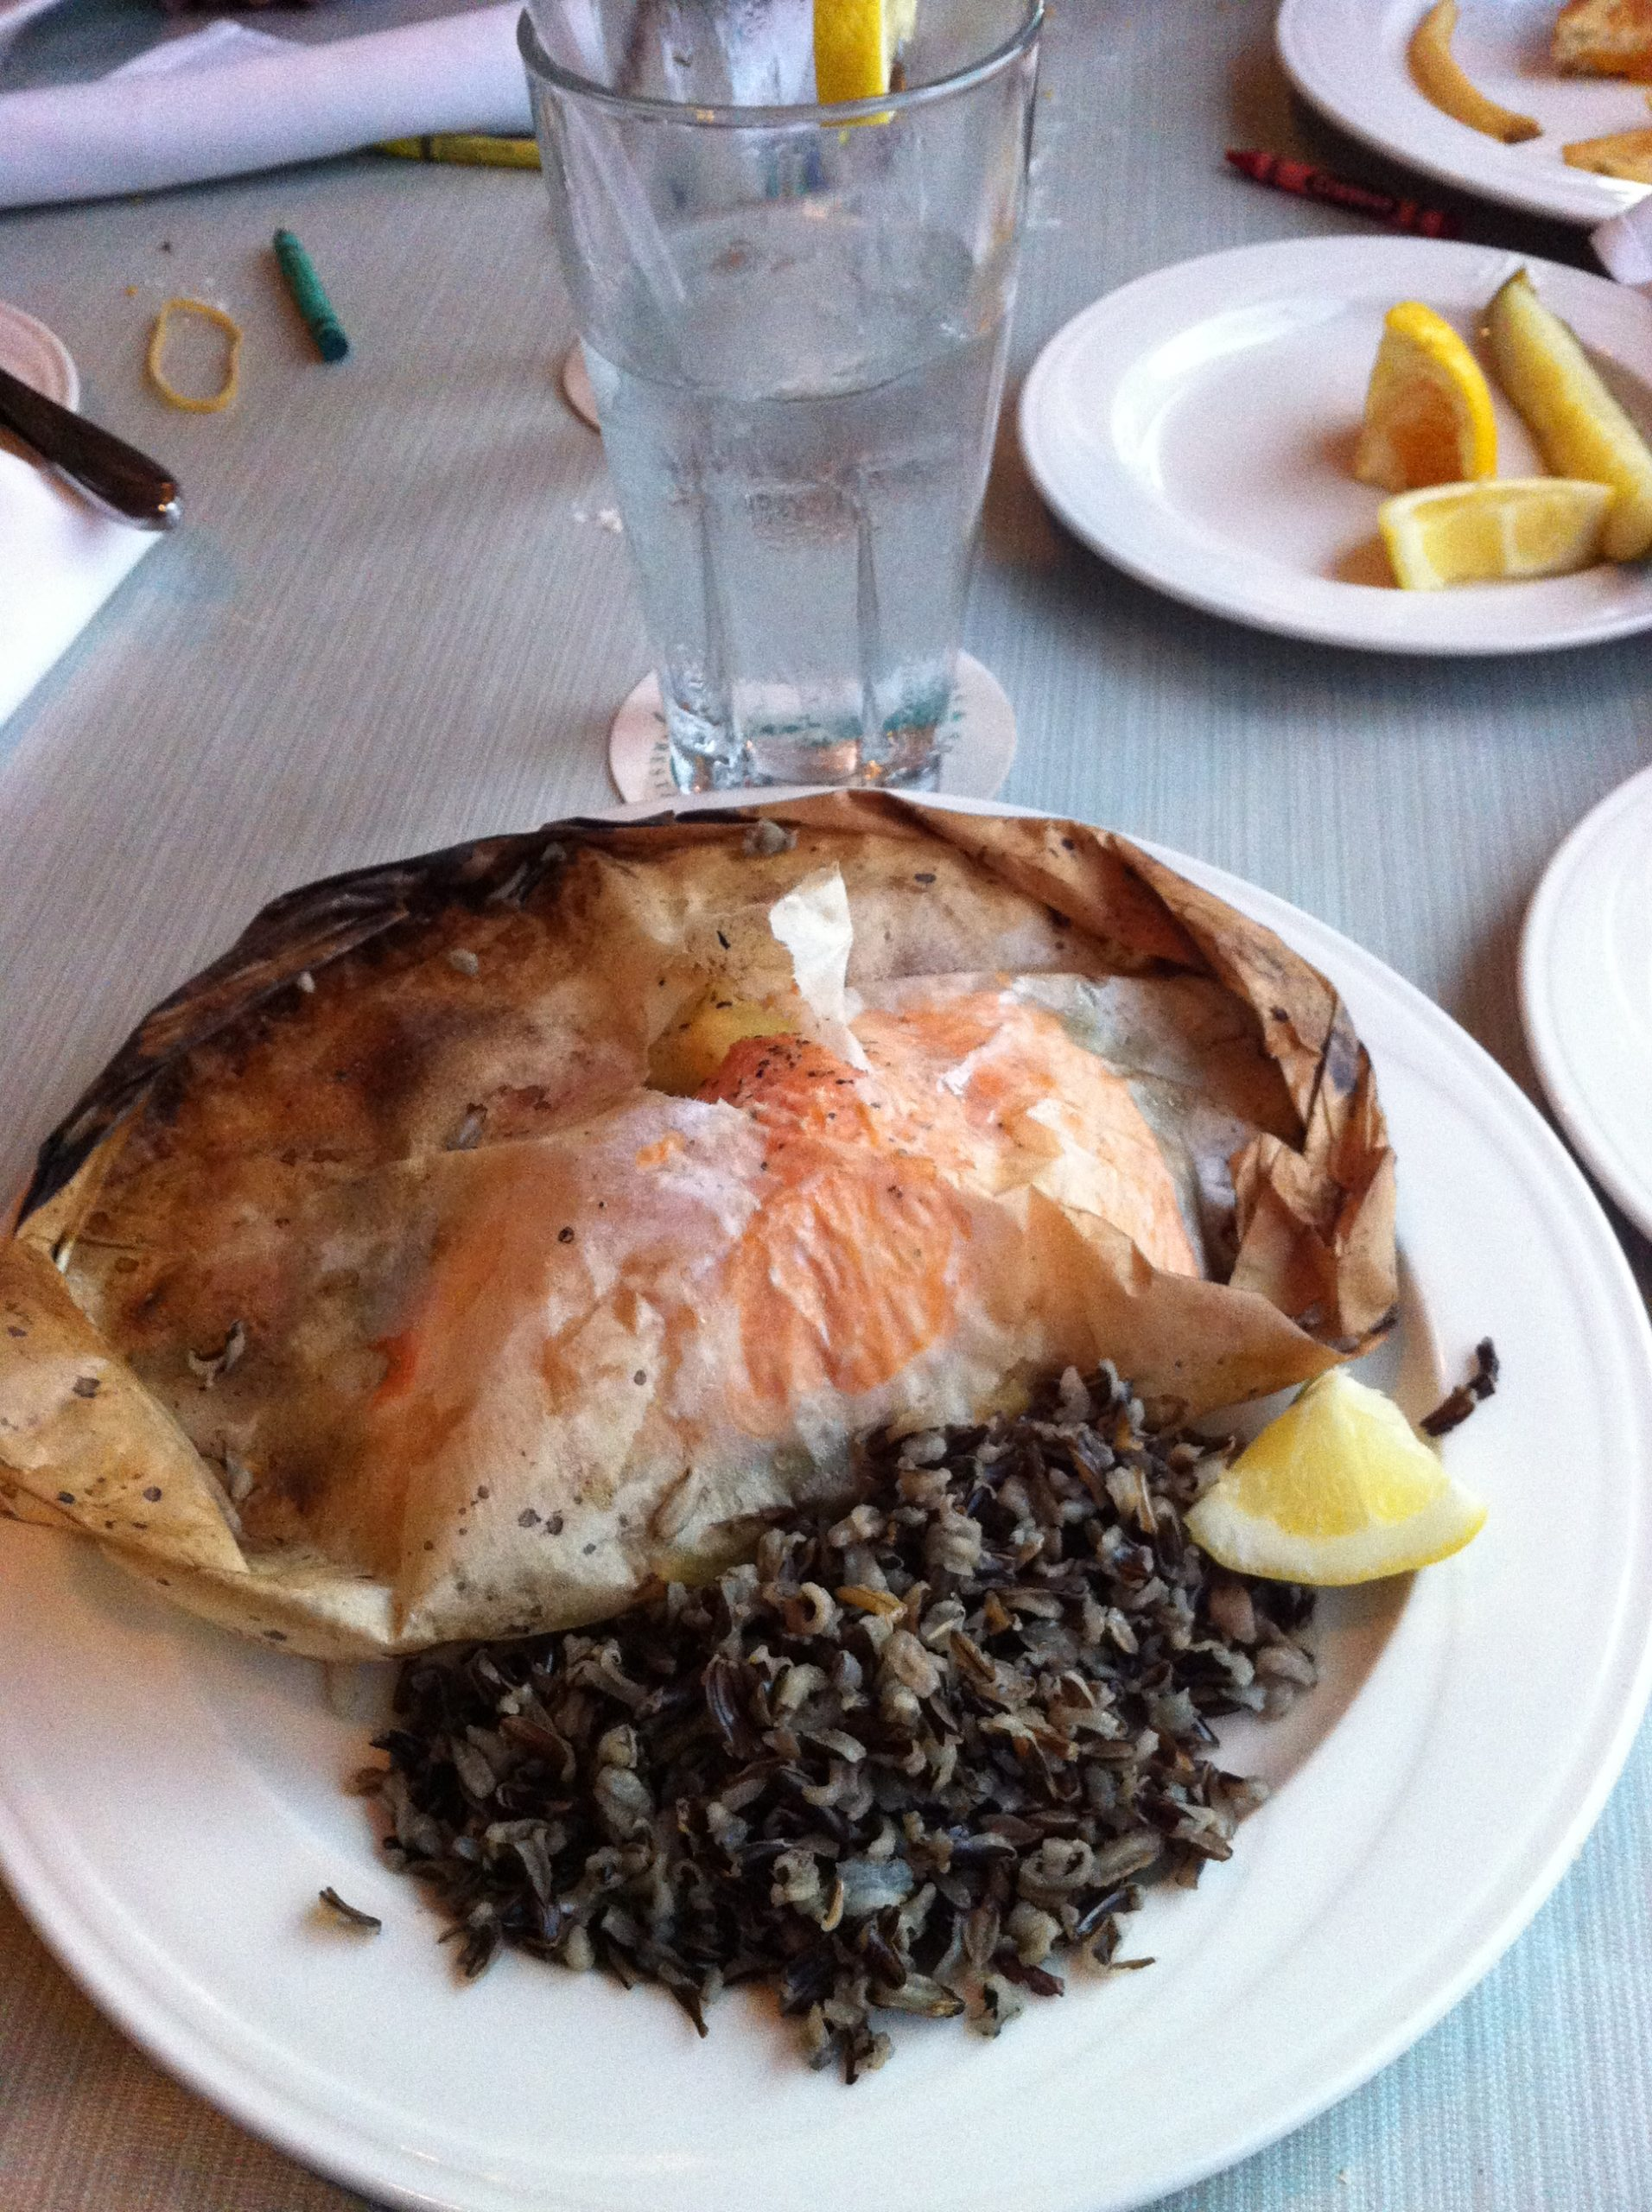 Salmon and wild rice at The Pilot House, one of many Wilmington NC restaurants.